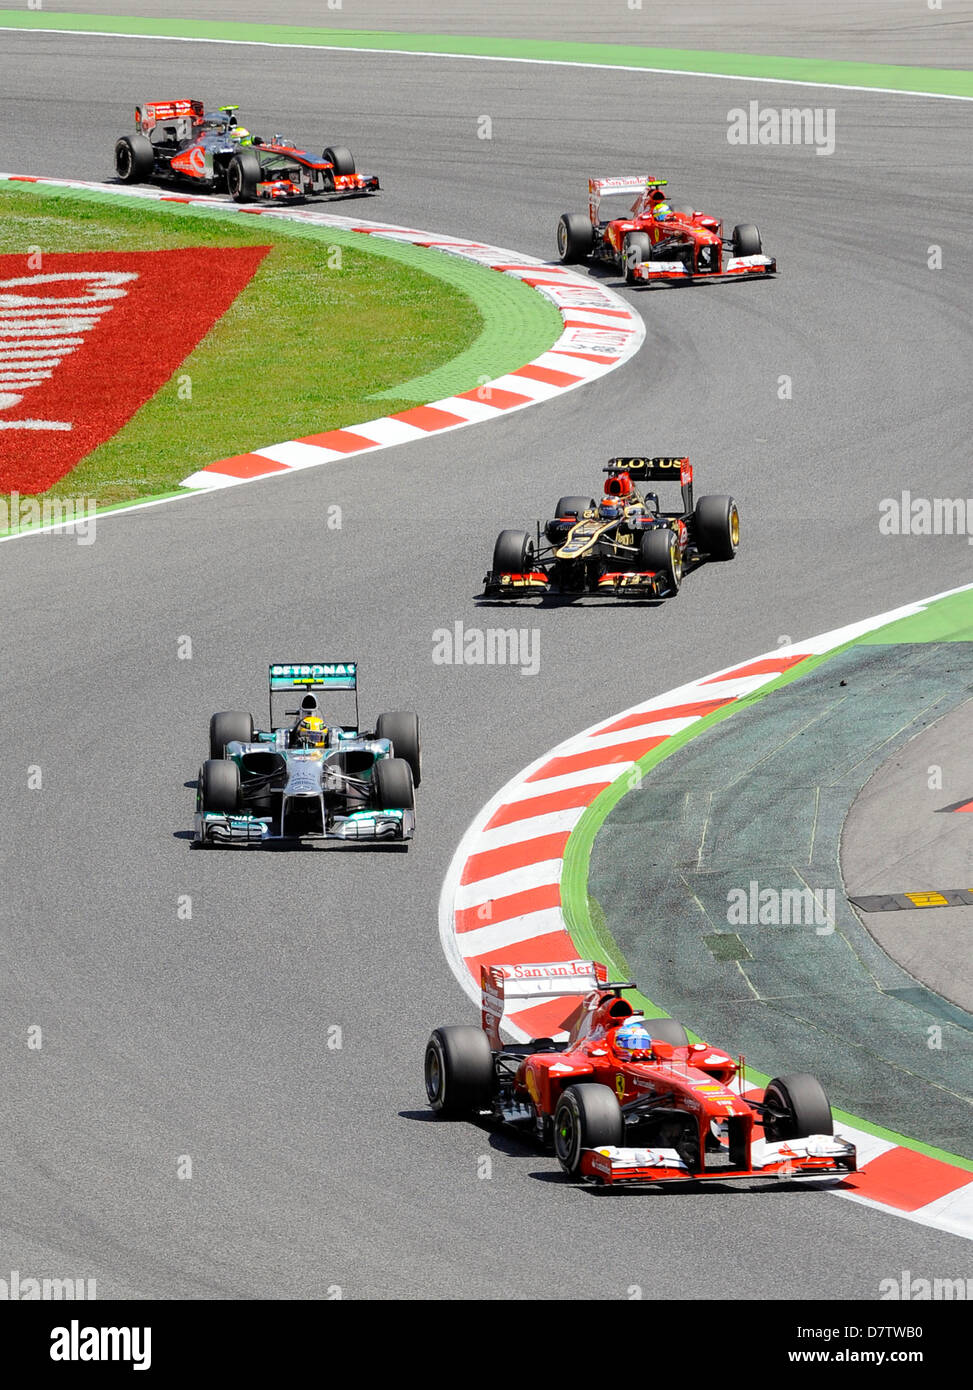 Montmelo, Spain. 12th May 2013. from  front:  Fernando Alonso (ESP), Ferrari F138, Lewis Hamilton (GBR), Mercedes - Stock Image